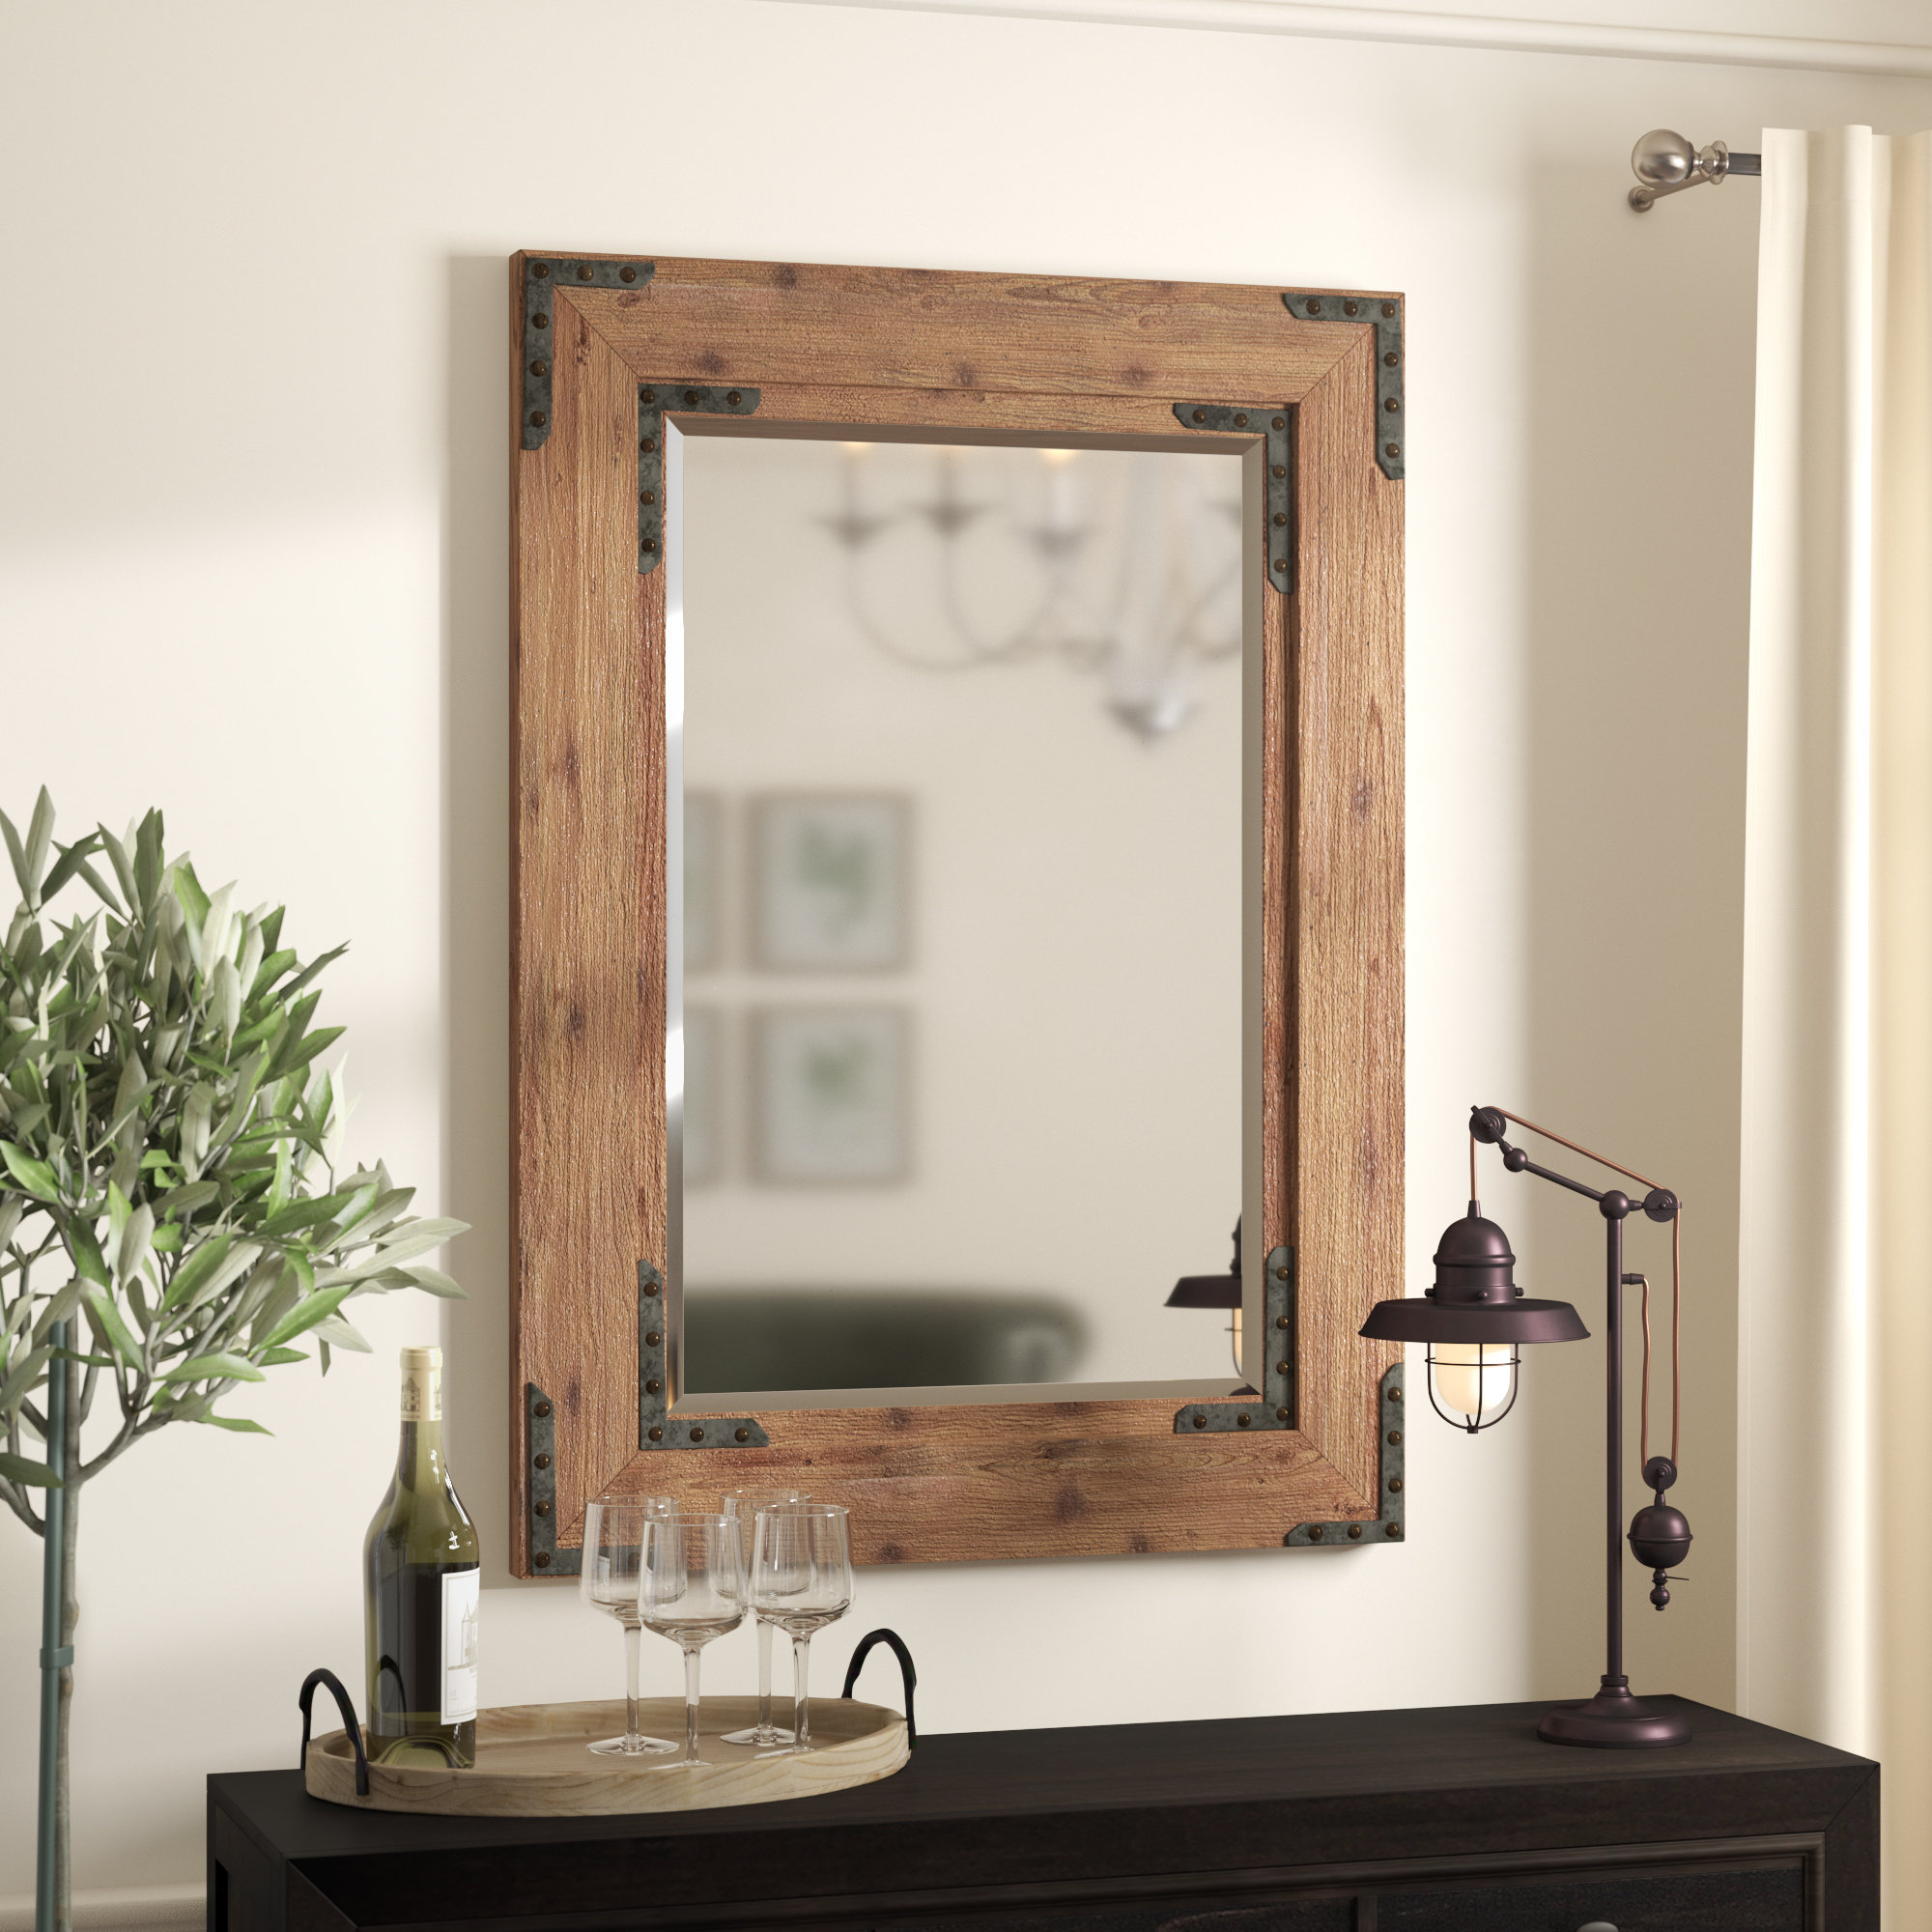 2020 Tifton Traditional Beveled Accent Mirror Inside Berinhard Accent Mirrors (View 15 of 20)